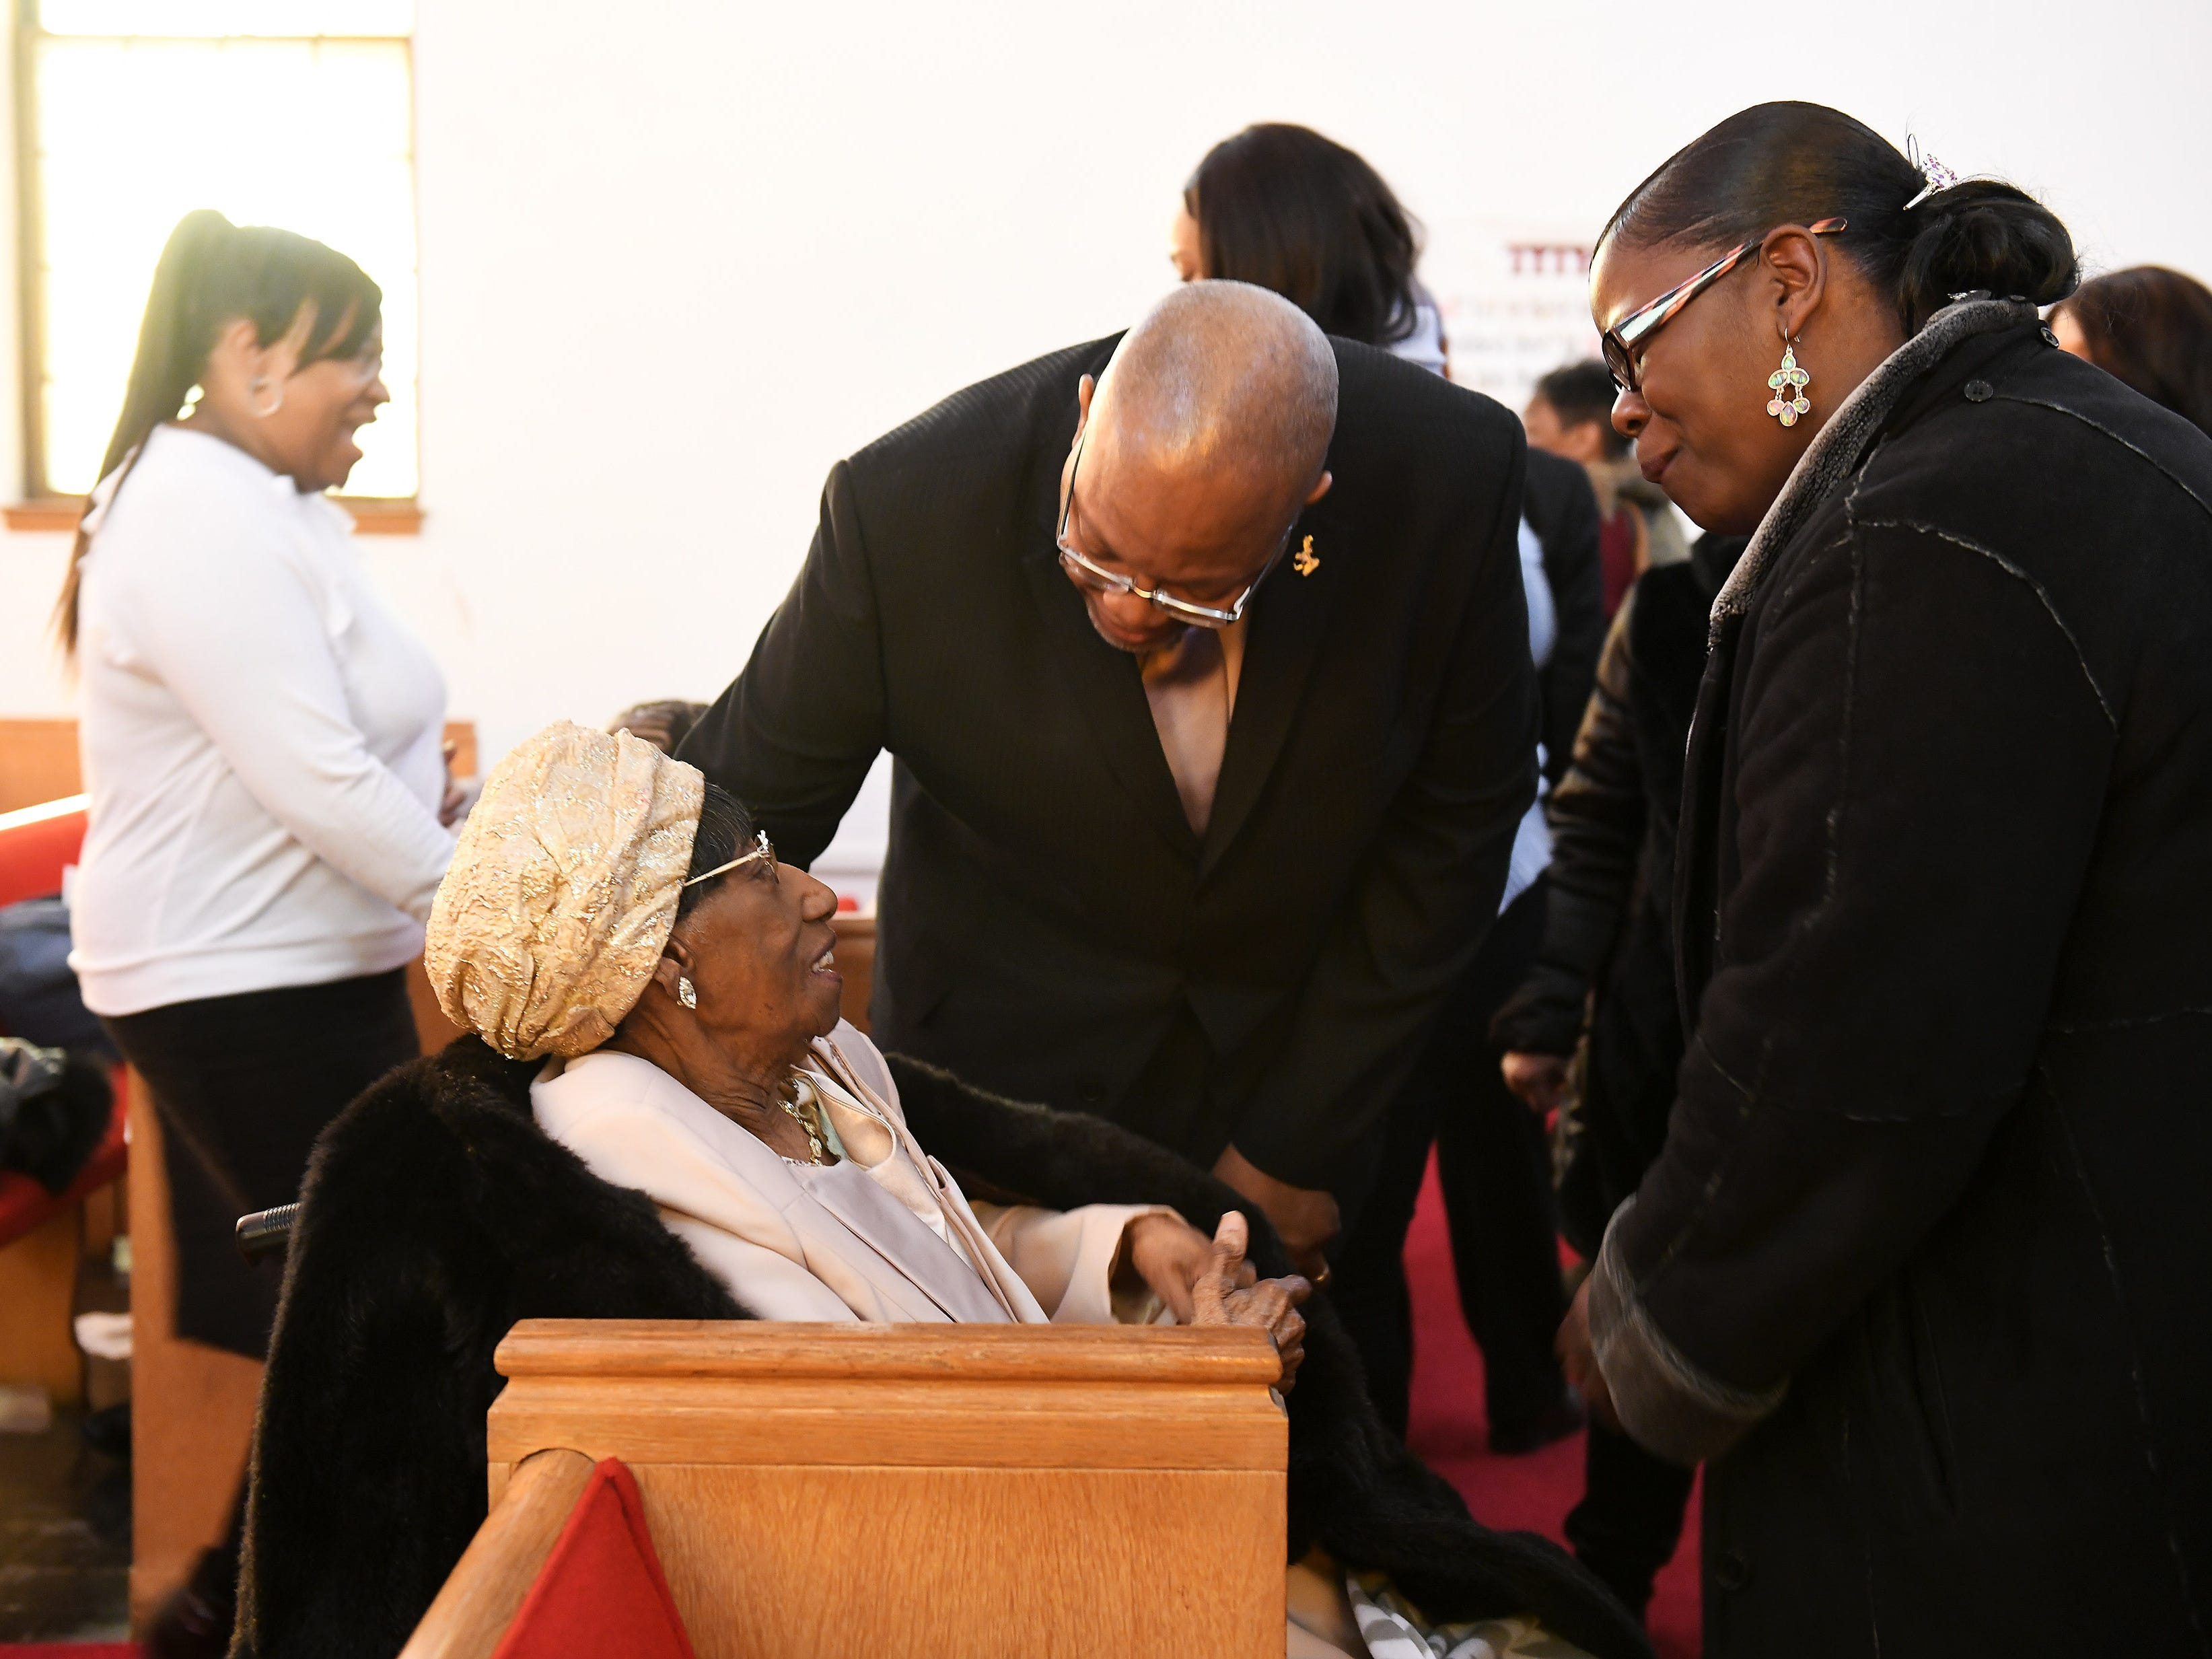 """""""Mother"""" Lois Holden, 109, left, talks with Pastor Eugene Cole and his wife, Georgea Cole of V.O. Greater City Church Detroit after the service at Mount Calvary Baptist Church in Detroit on Feb. 3, 2019. The church congregation, family and friends celebrate the life of Lois Holden, aka """"Mother"""" Lois Holden, who just turned 109 years old."""